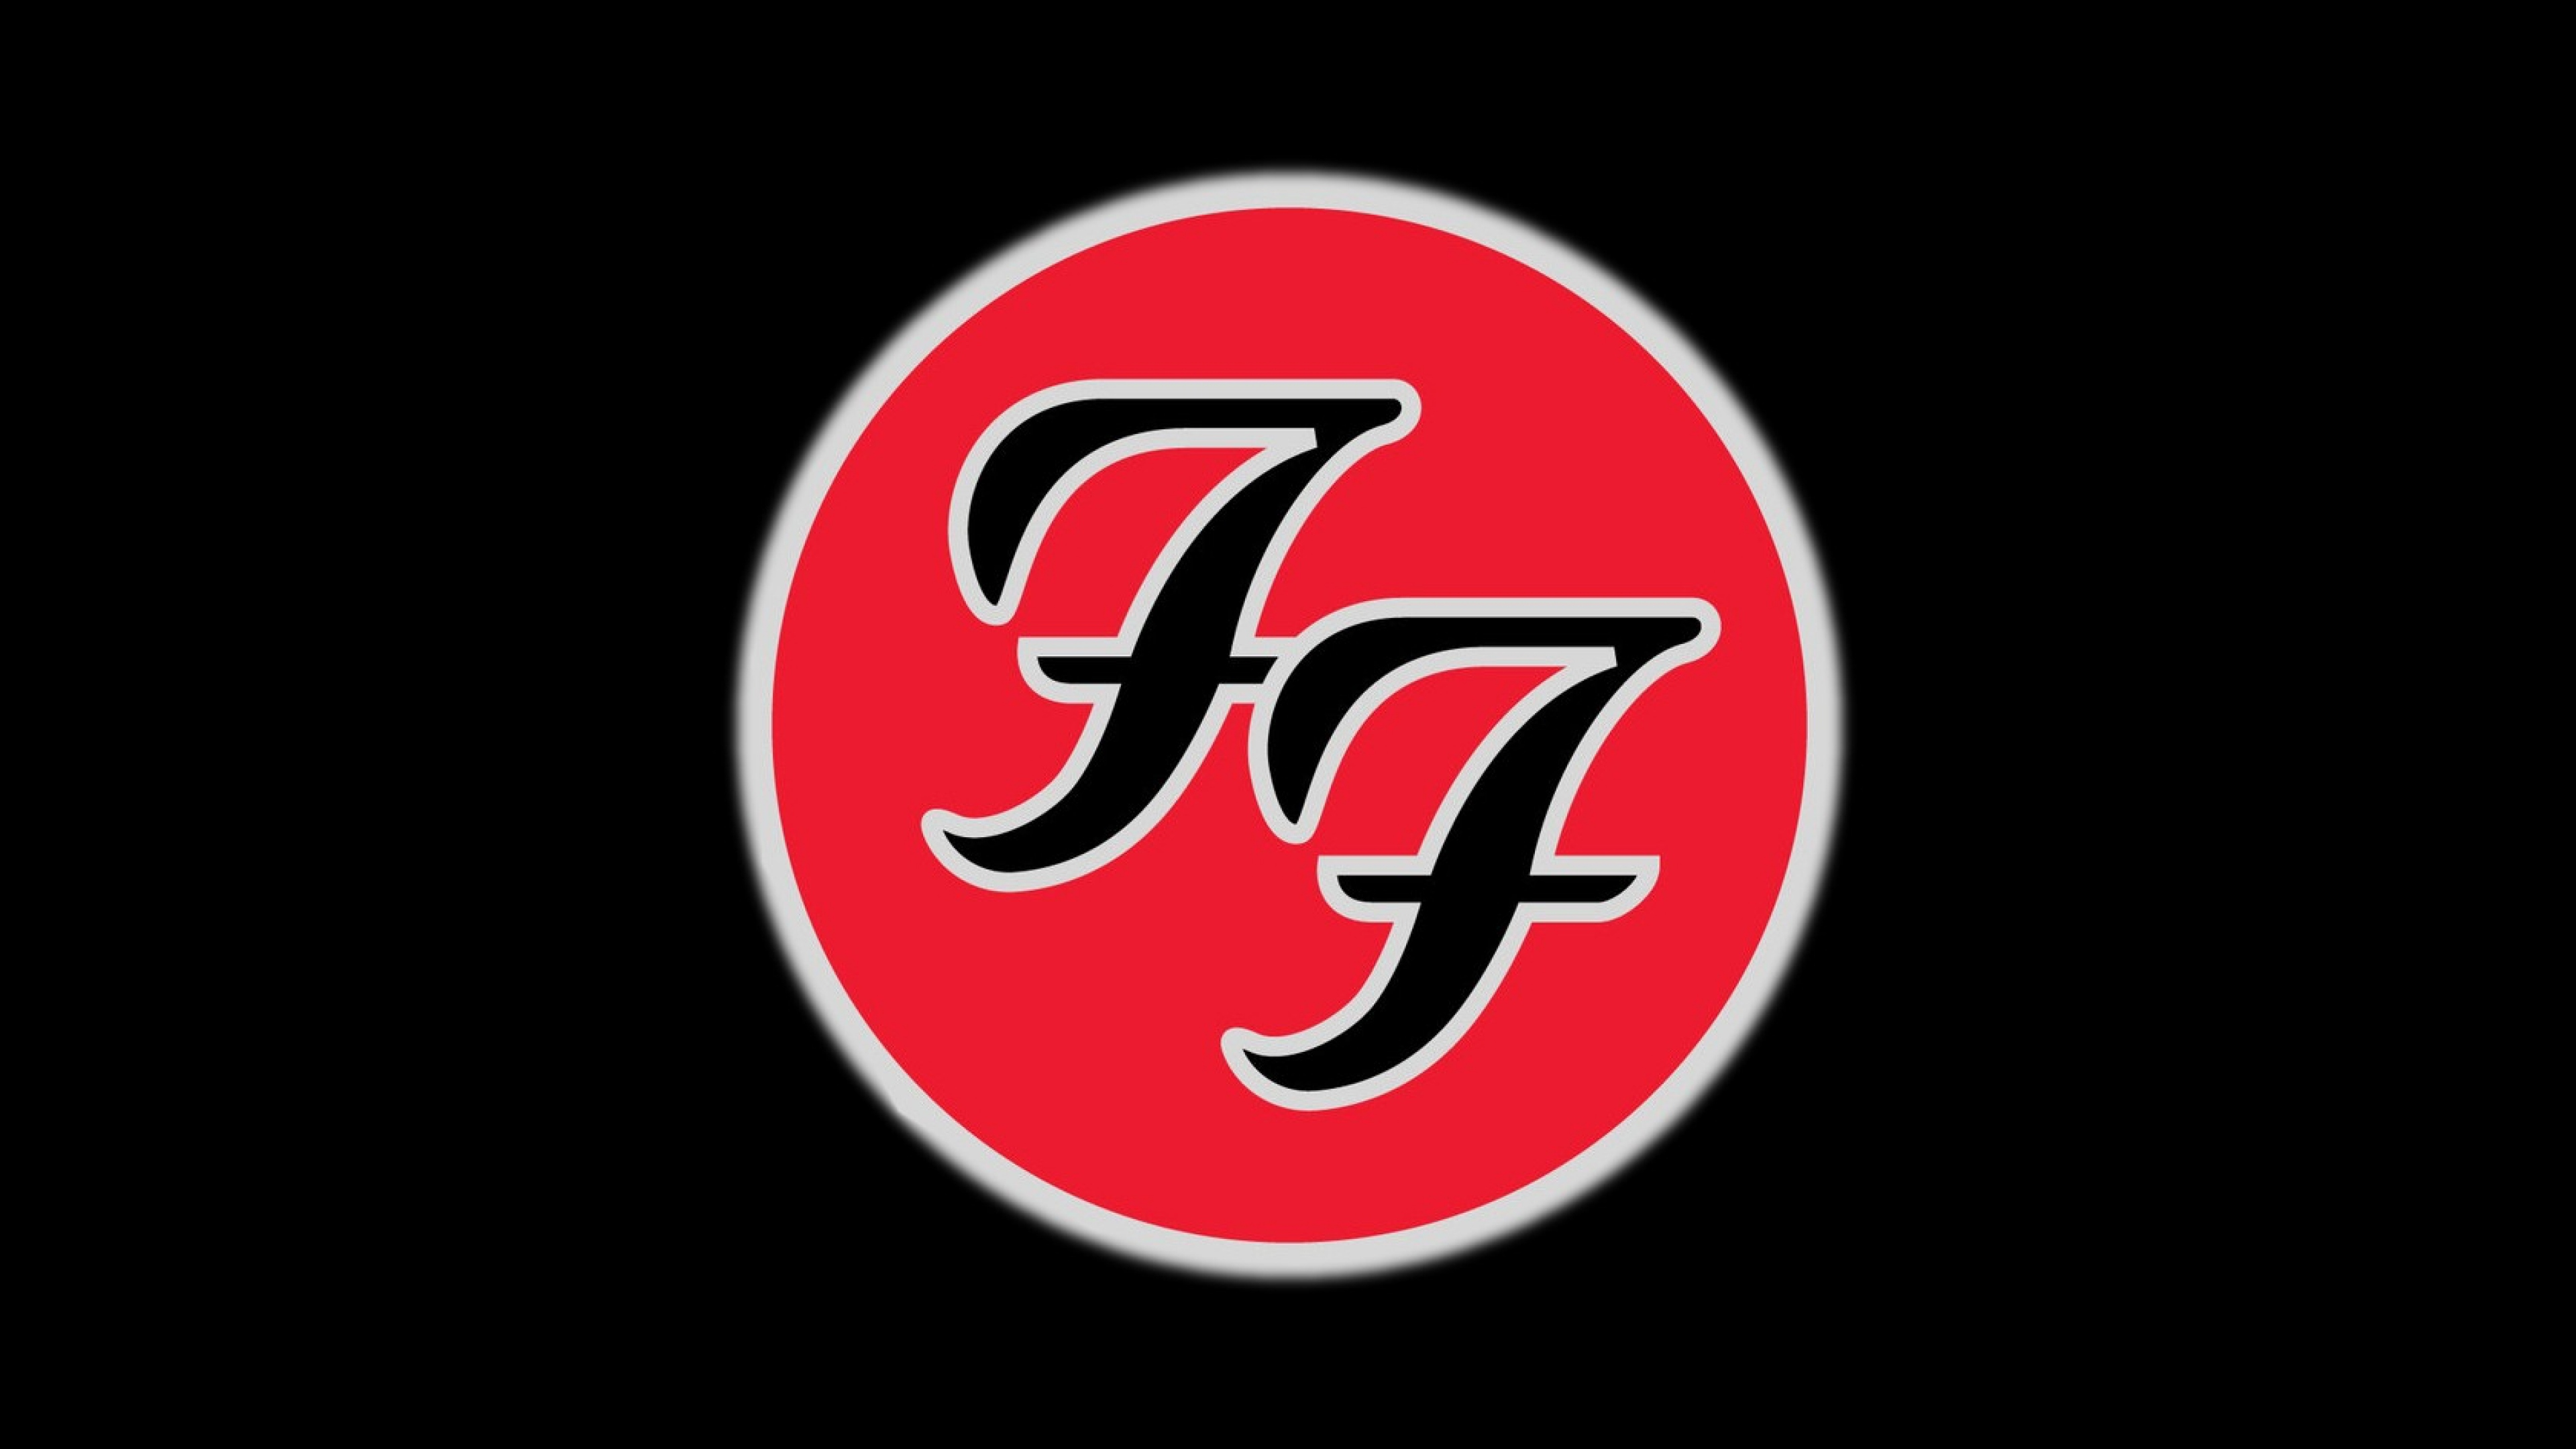 Wallpaperwiki Foo Fighters High Quality Wallpapers PIC WPB004333